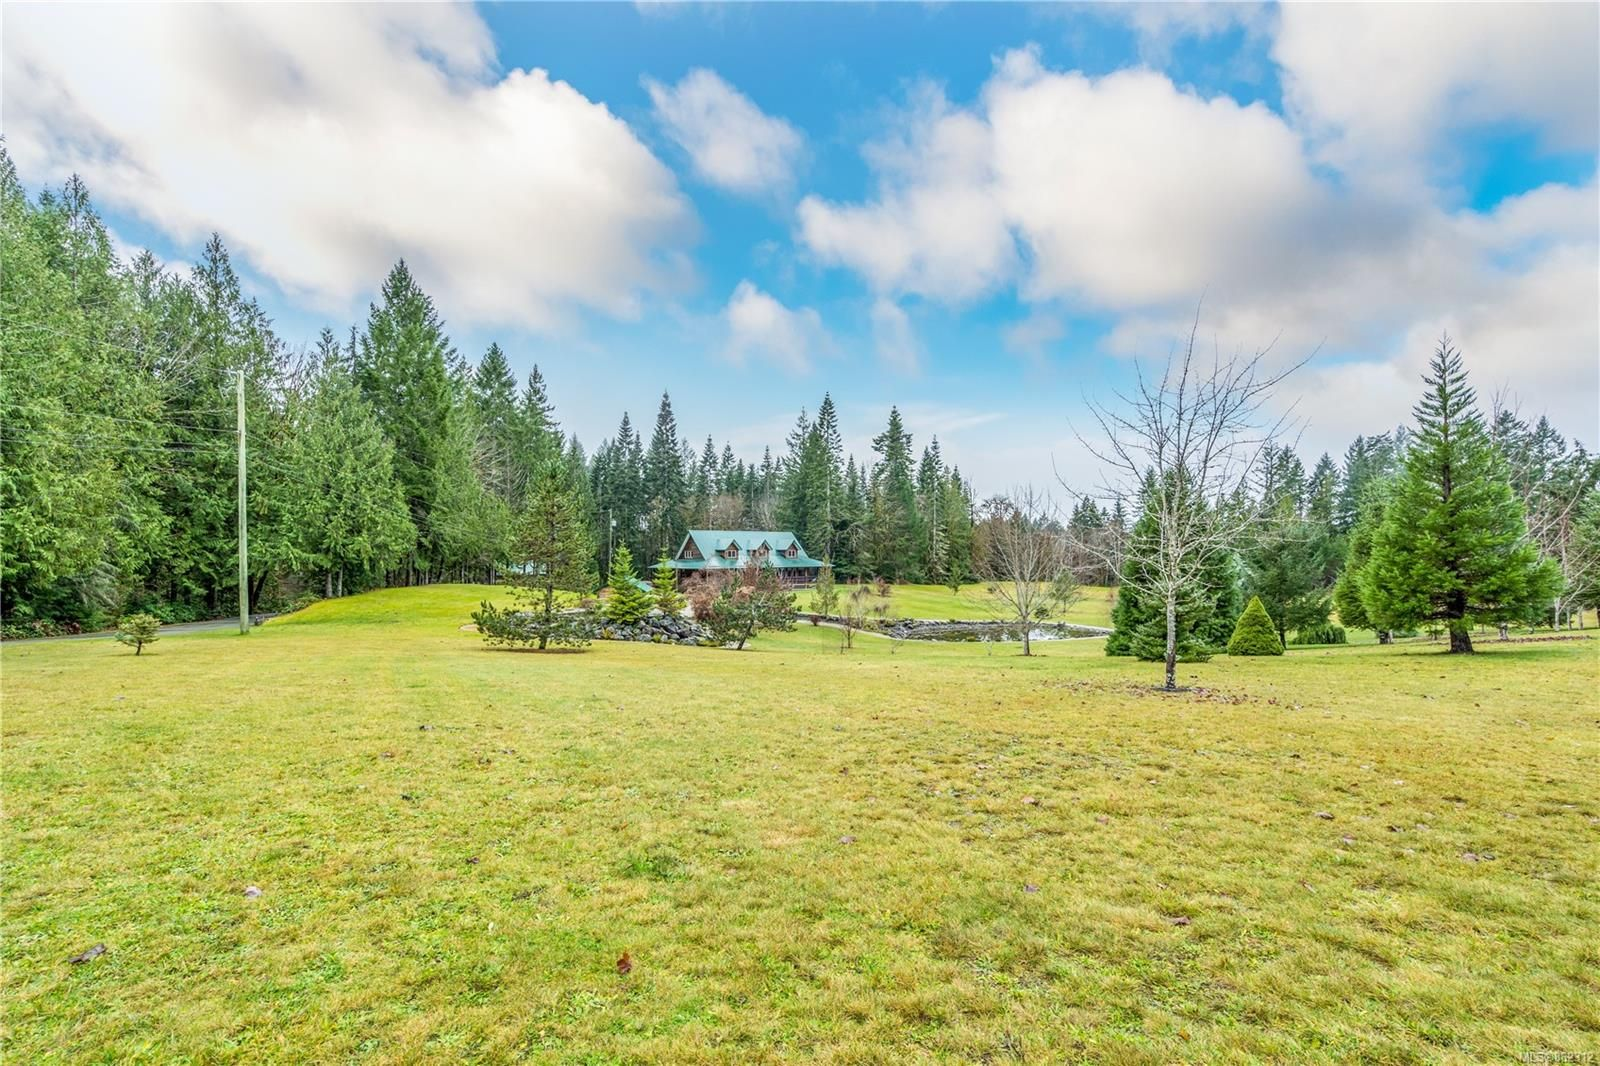 Photo 2: Photos: 7380 Plymouth Rd in : PA Alberni Valley House for sale (Port Alberni)  : MLS®# 862312